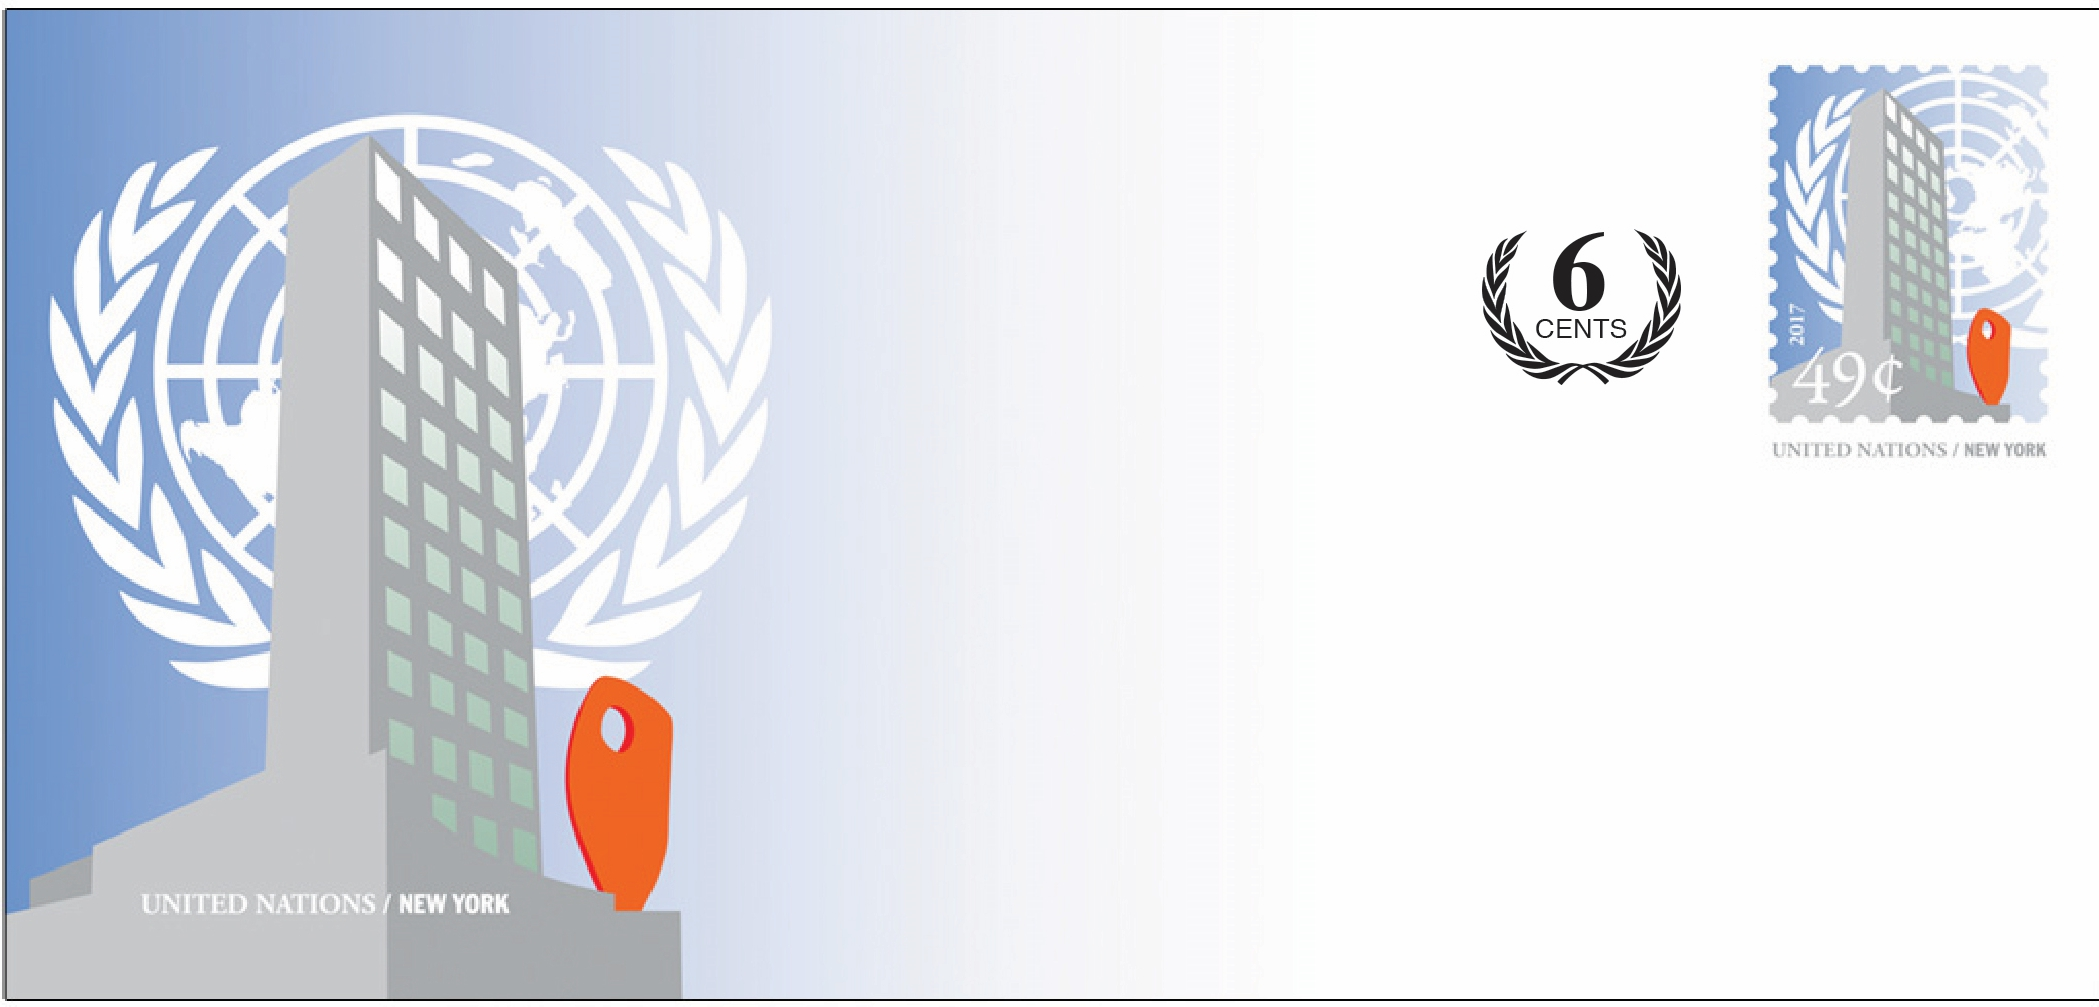 United Nations Headquarters (New York) - Revalued Envelope, large - 55 cents (February 1, 2019)